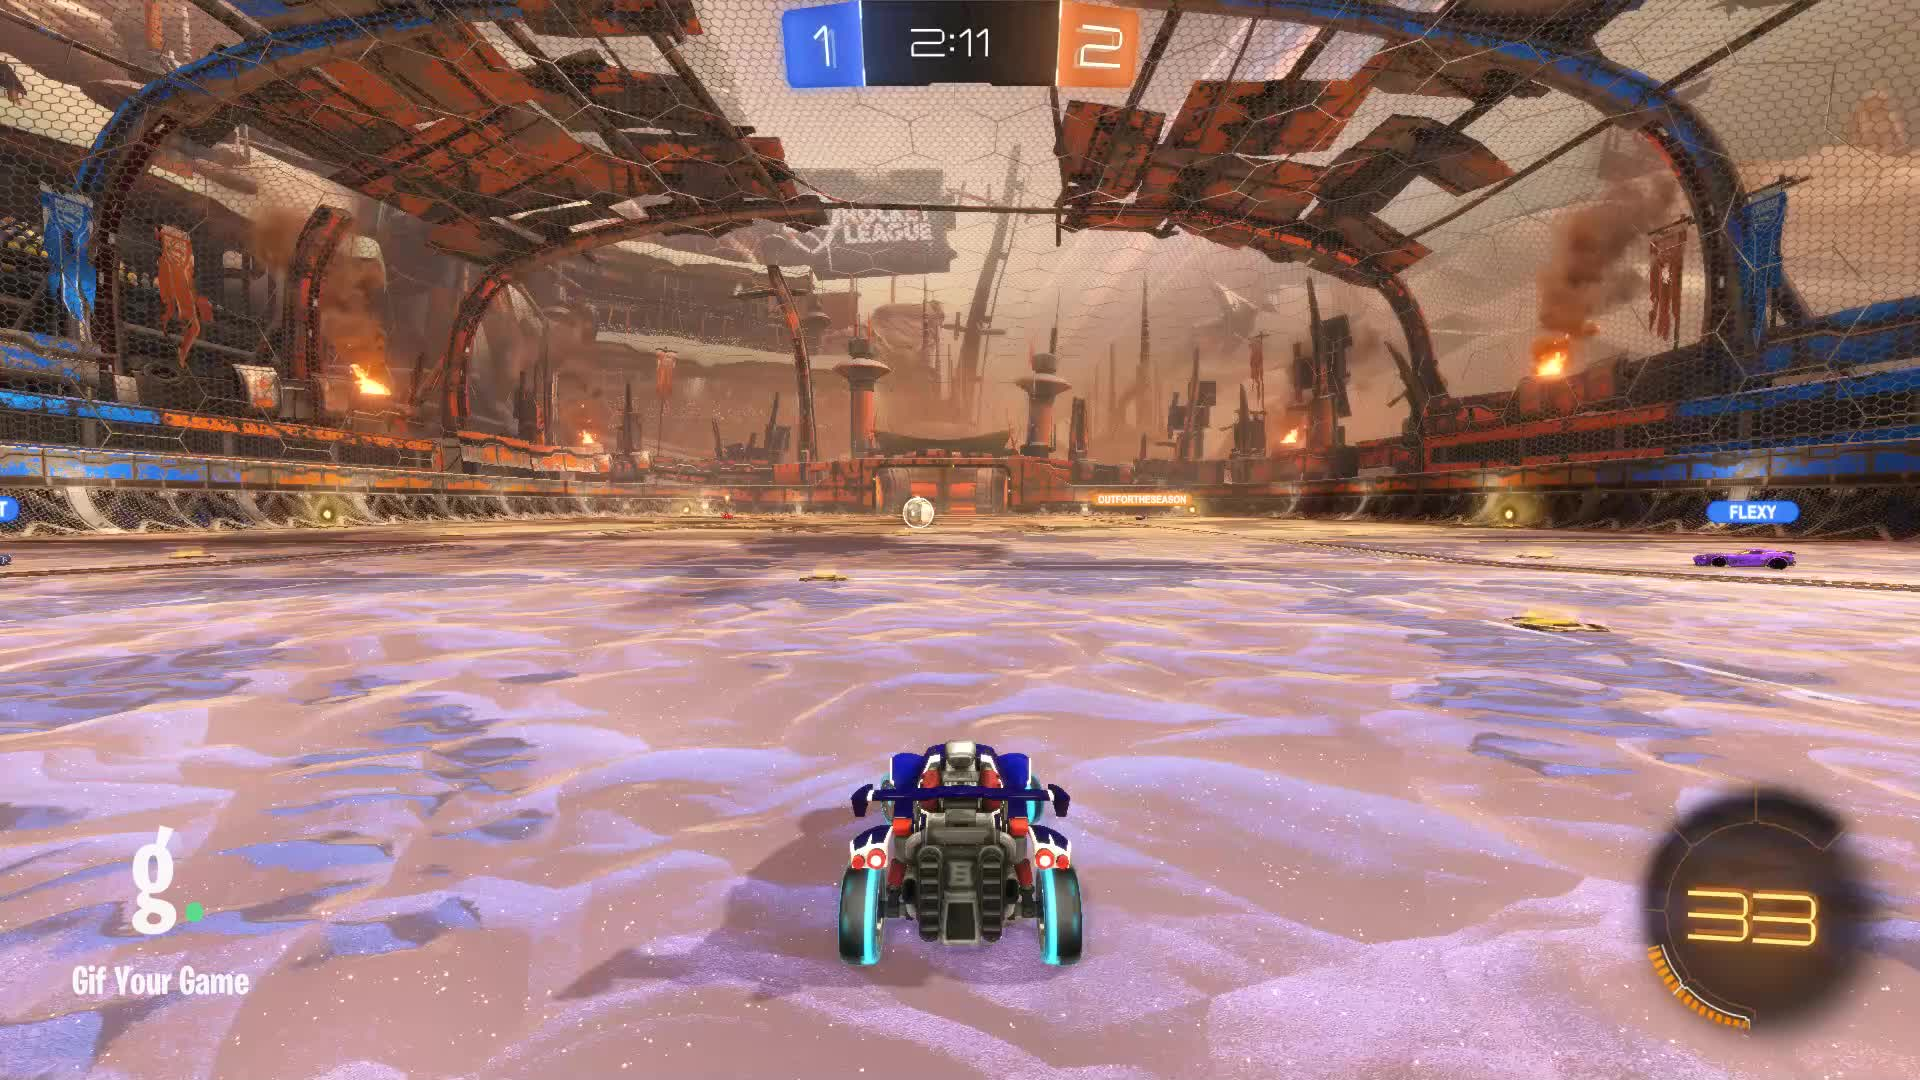 Ducks, Gif Your Game, GifYourGame, Goal, Rocket League, RocketLeague, Goal 4: Ducks GIFs